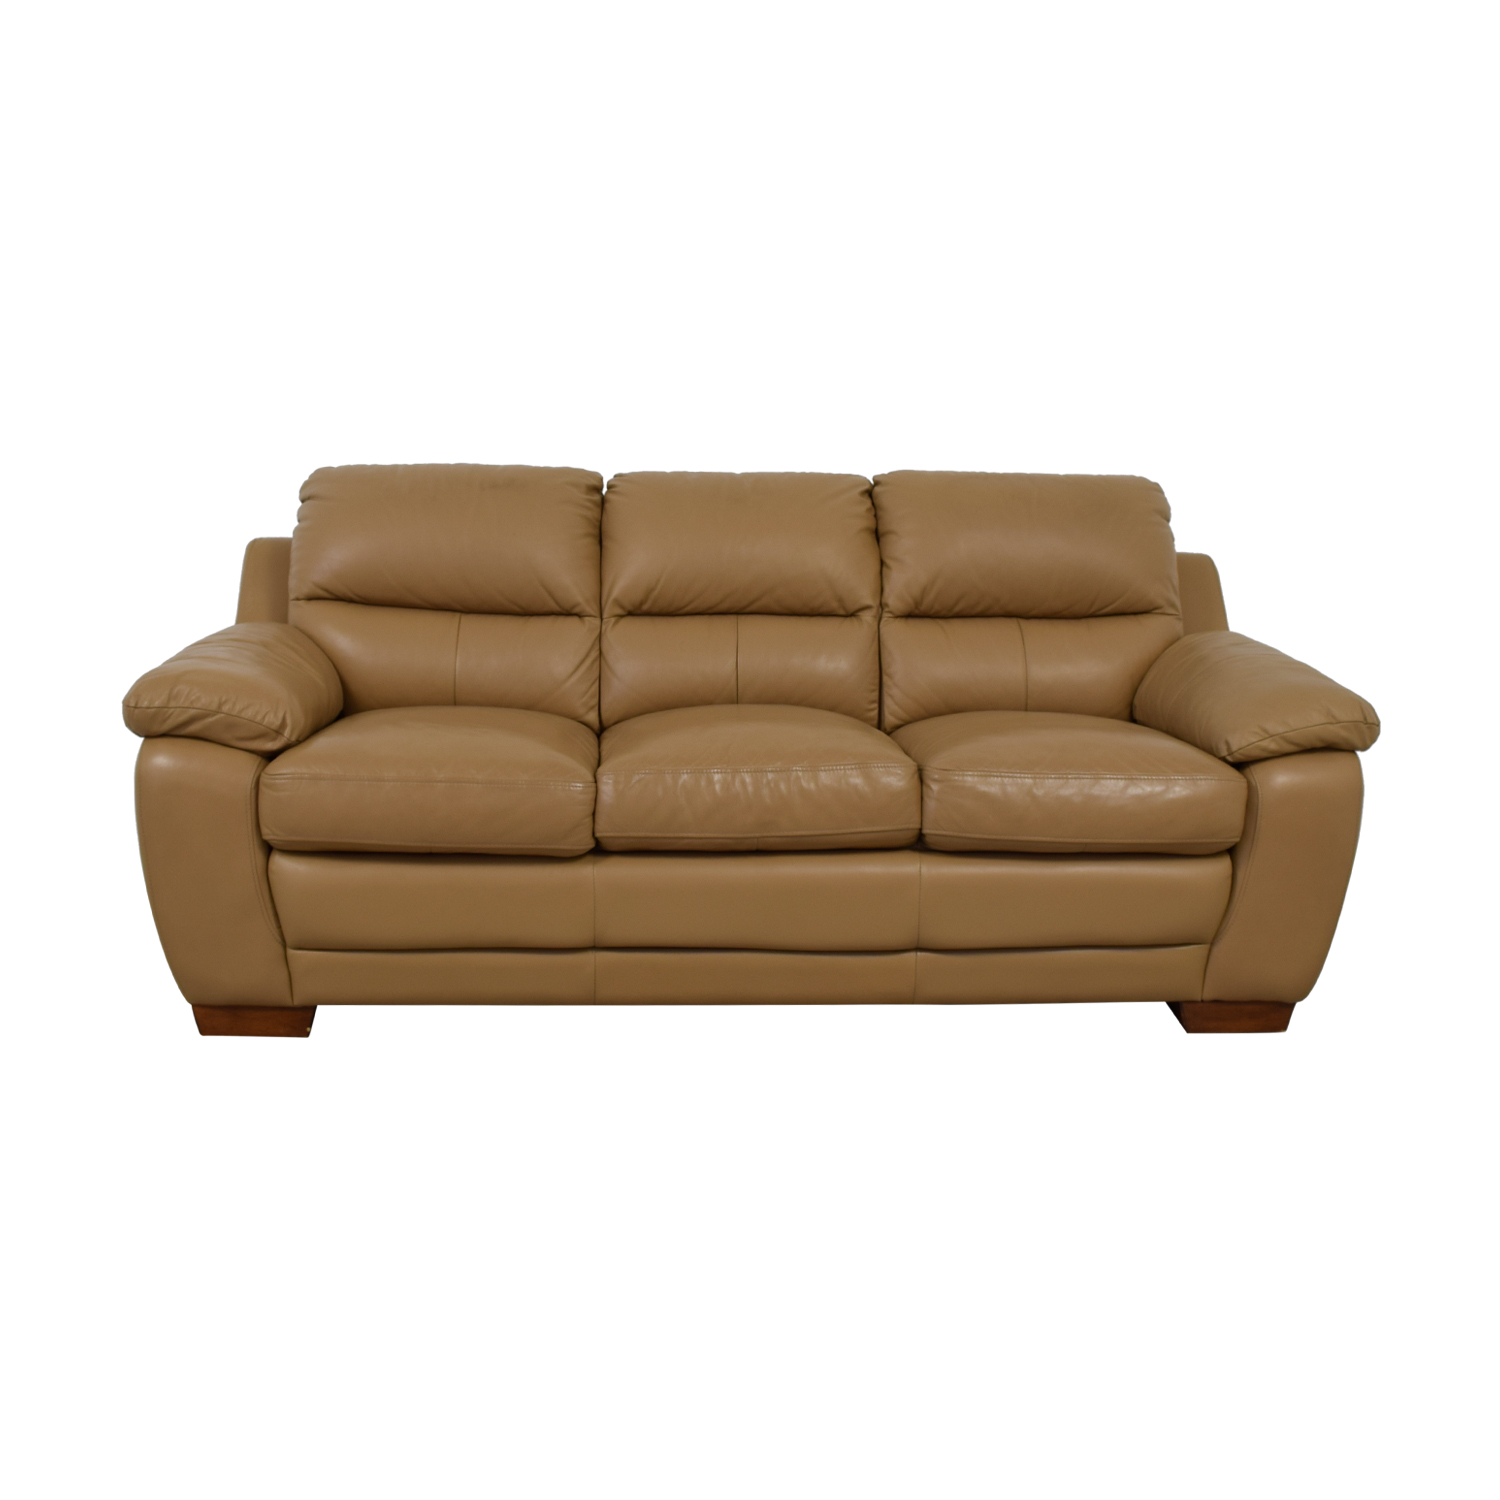 Raymour & Flanigan Raymour & Flanigan Tan Leather Three-Cushion Sofa on sale